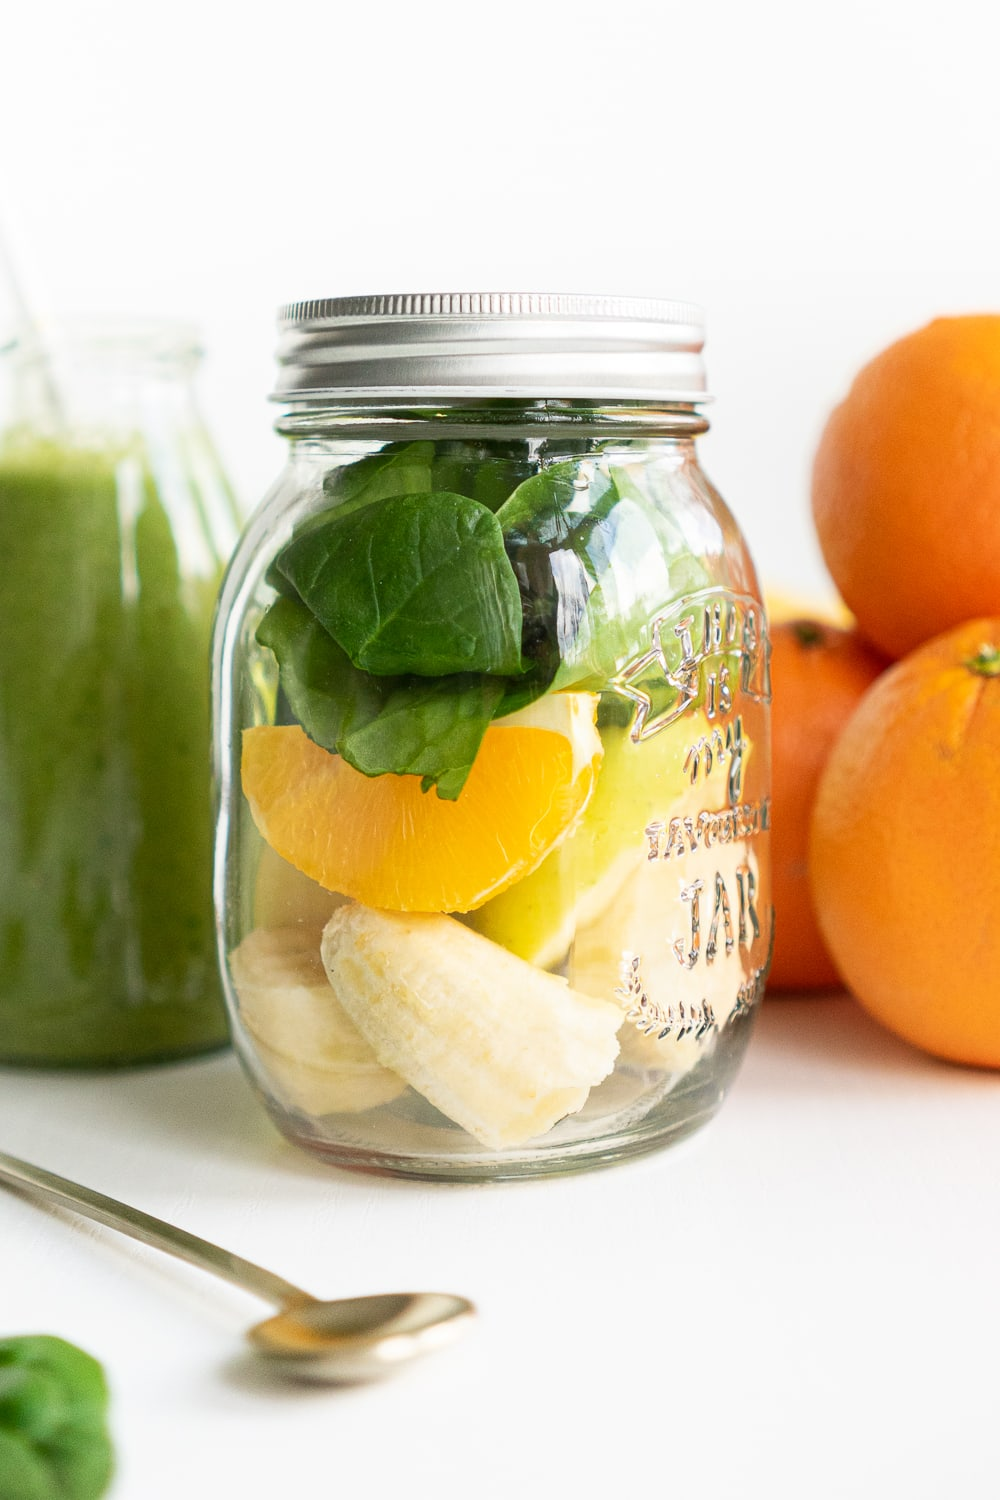 How to meal prep a green smoothie: place all ingredients in a jar or freezer bag and freeze